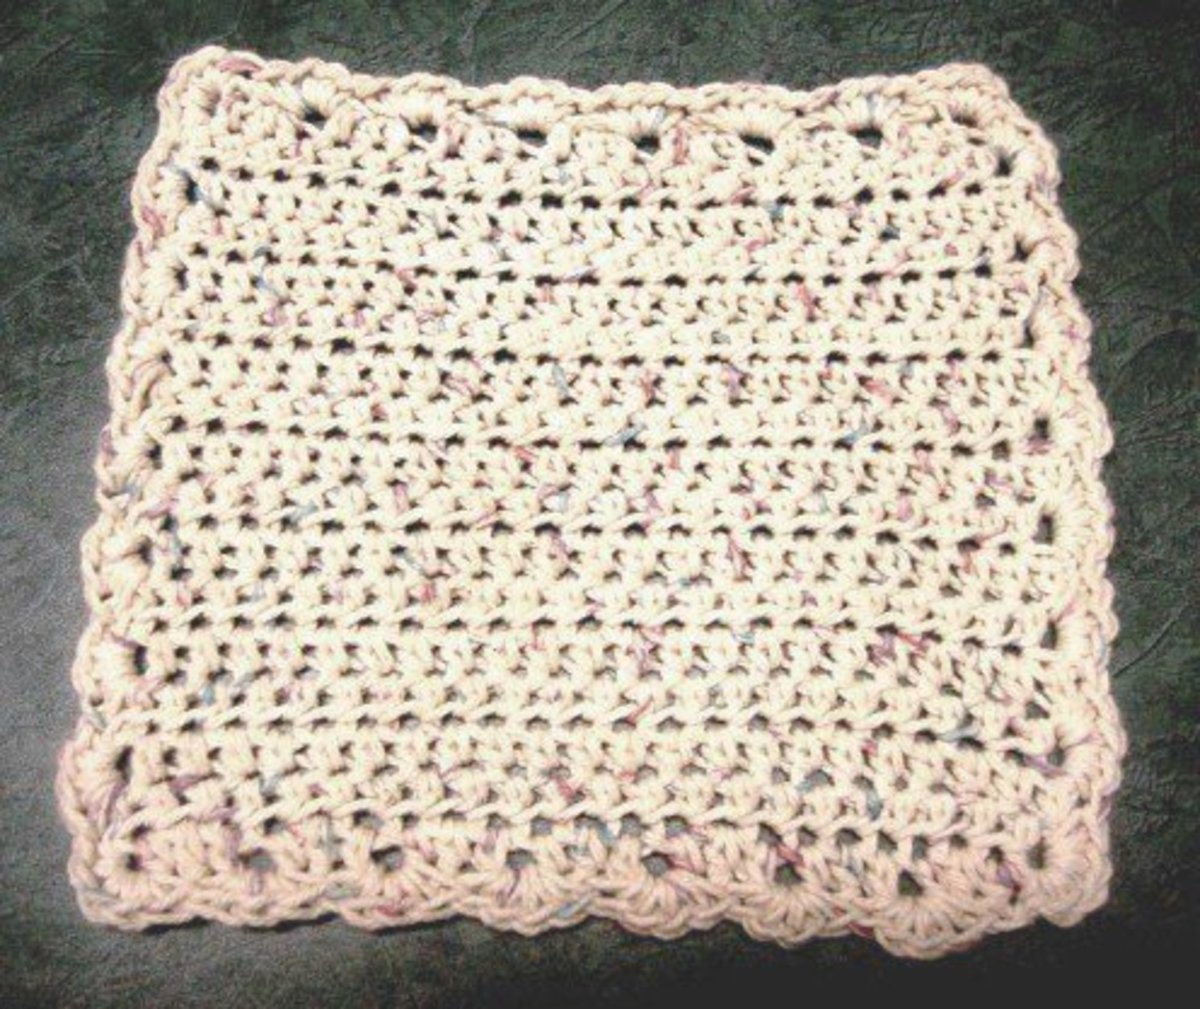 Adding a scalloped edge pretties up this practical dishcloth.